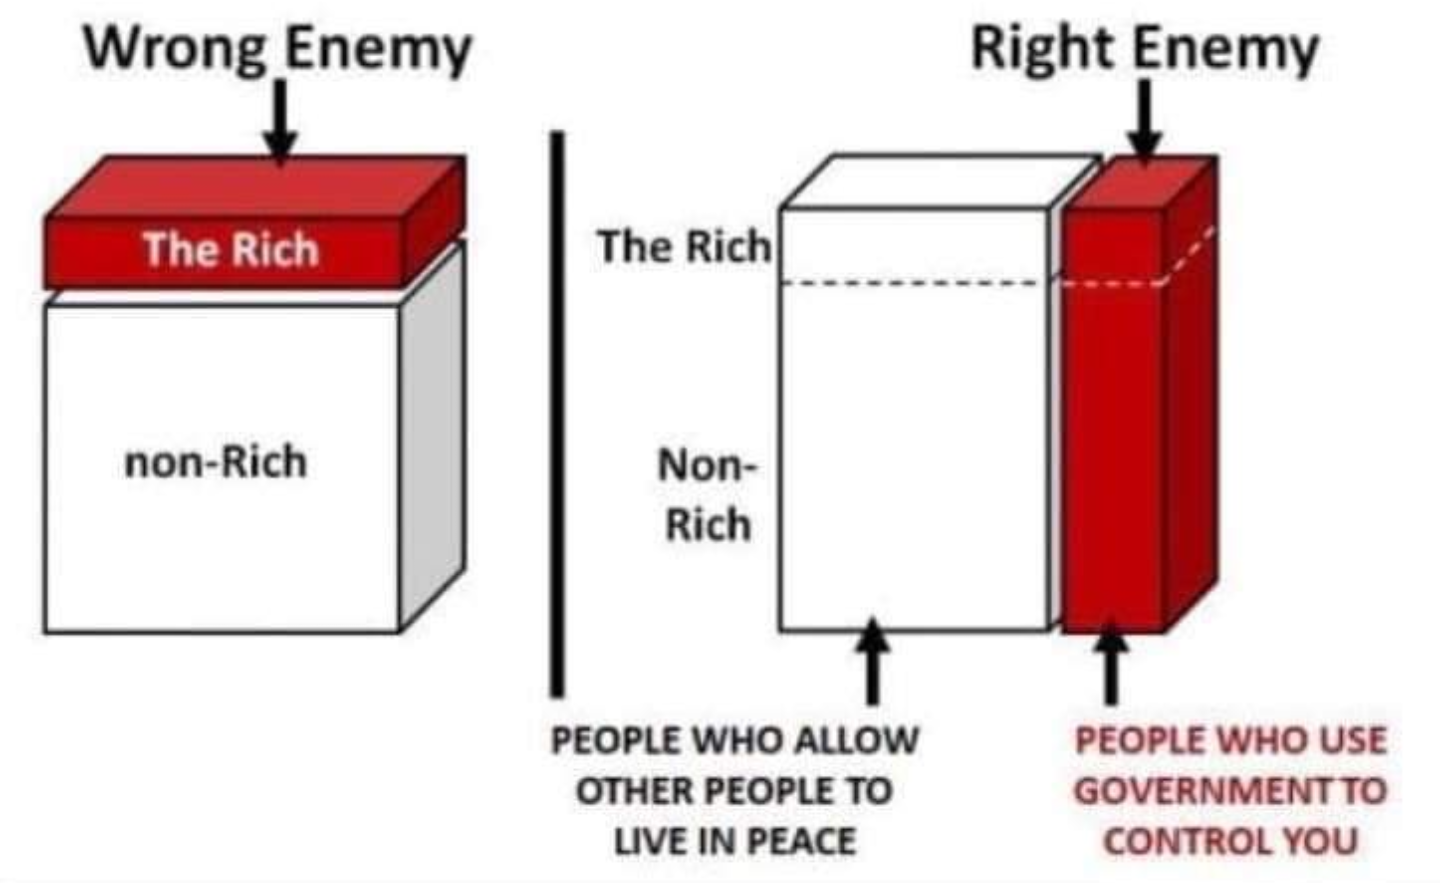 Wrong Enemy Right Enemy  —        Ll Rich The Rich Non- Rich  PEOPLE WHO ALLOW PEOPLE WHO USE OTHER PEOPLE TO GOVERNMENTTO LIVE IN PEACE CONTROL YOU